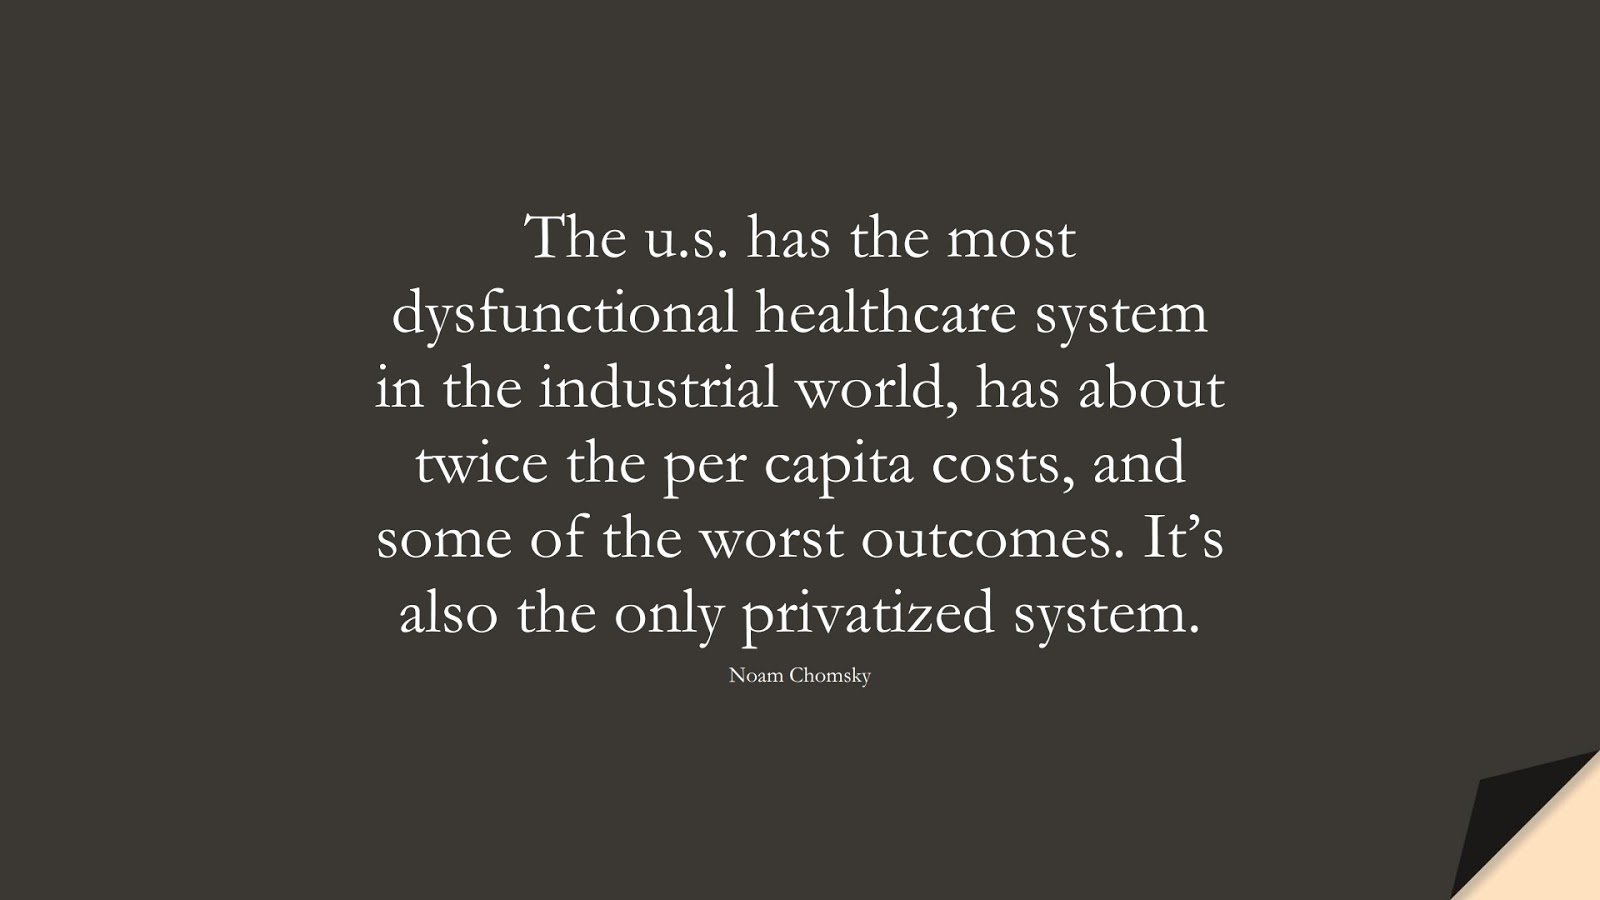 The u.s. has the most dysfunctional healthcare system in the industrial world, has about twice the per capita costs, and some of the worst outcomes. It's also the only privatized system. (Noam Chomsky);  #HealthQuotes